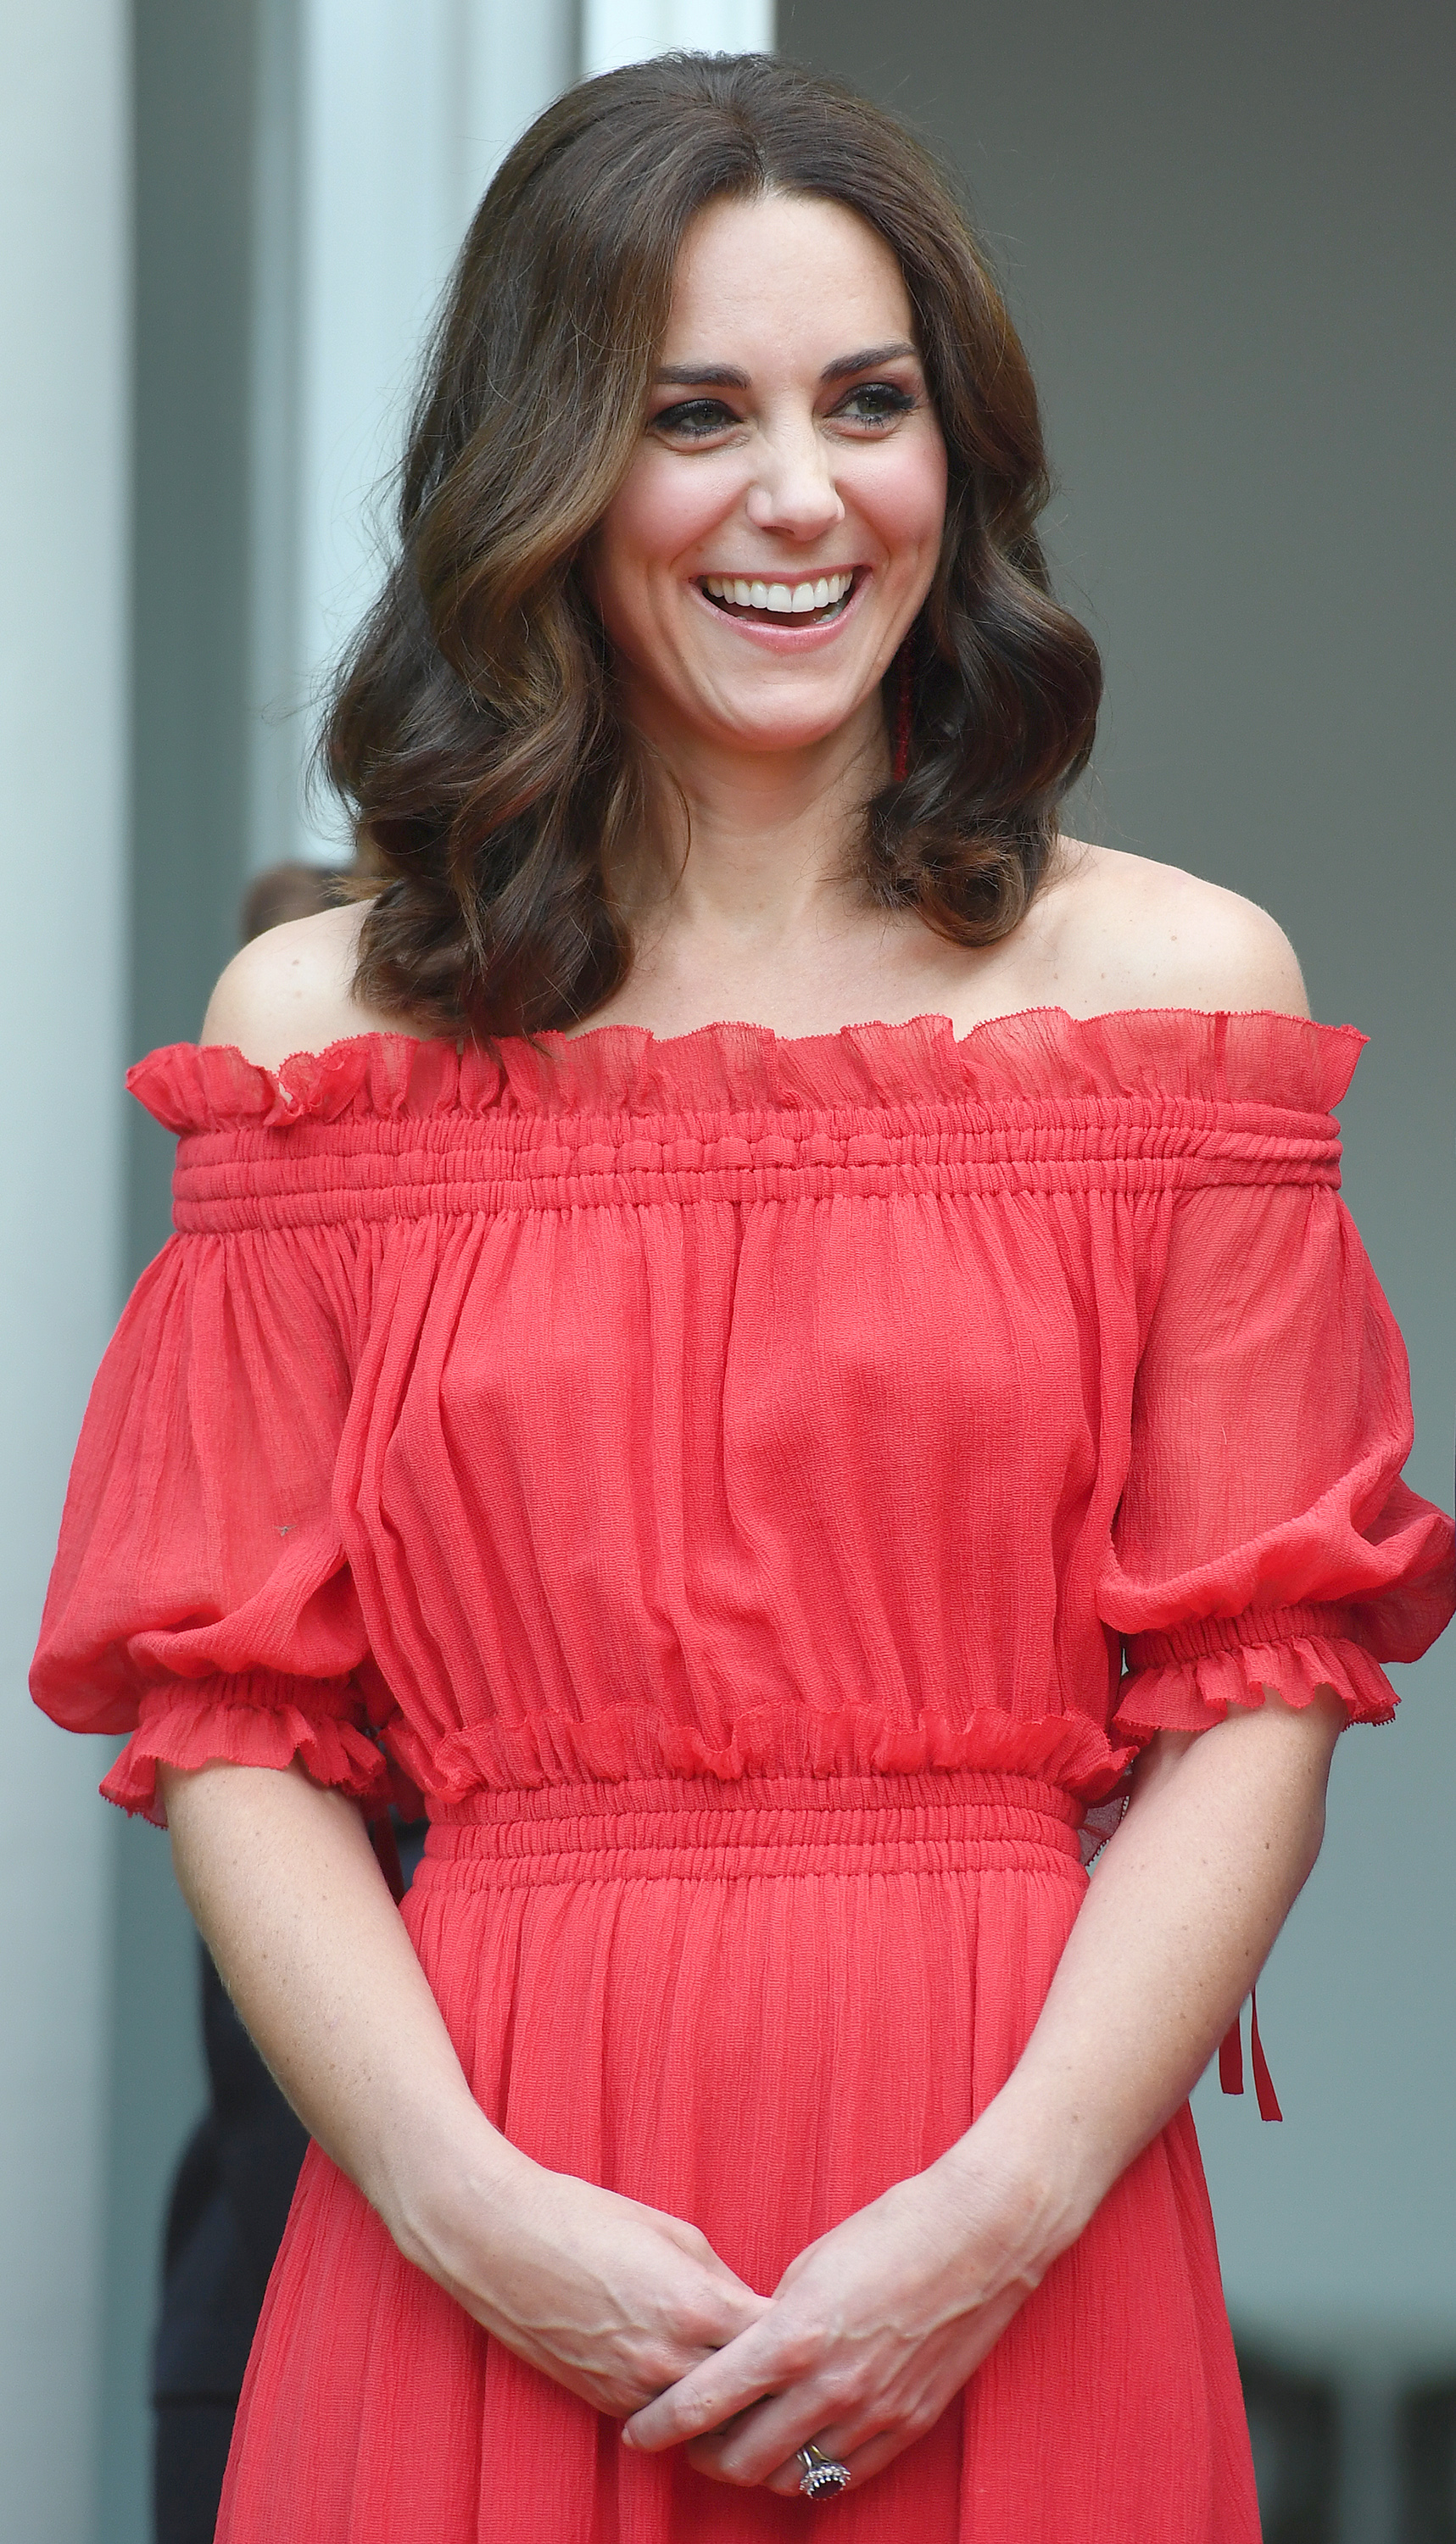 Photo Credit Must Read Zak Hussein<BR/> Prince William, the Duke of Cambridge and Catherine, the Duchess of Cambridge attend The Queen's Birthday Party in Germany at the British Ambassadorial Residence in Berlin <P> Pictured: Catherine, the Duchess of Cambridge <B>Ref: SPL1541298  200717  </B><BR/> Picture by: Zak Hussein<BR/> </P><P>